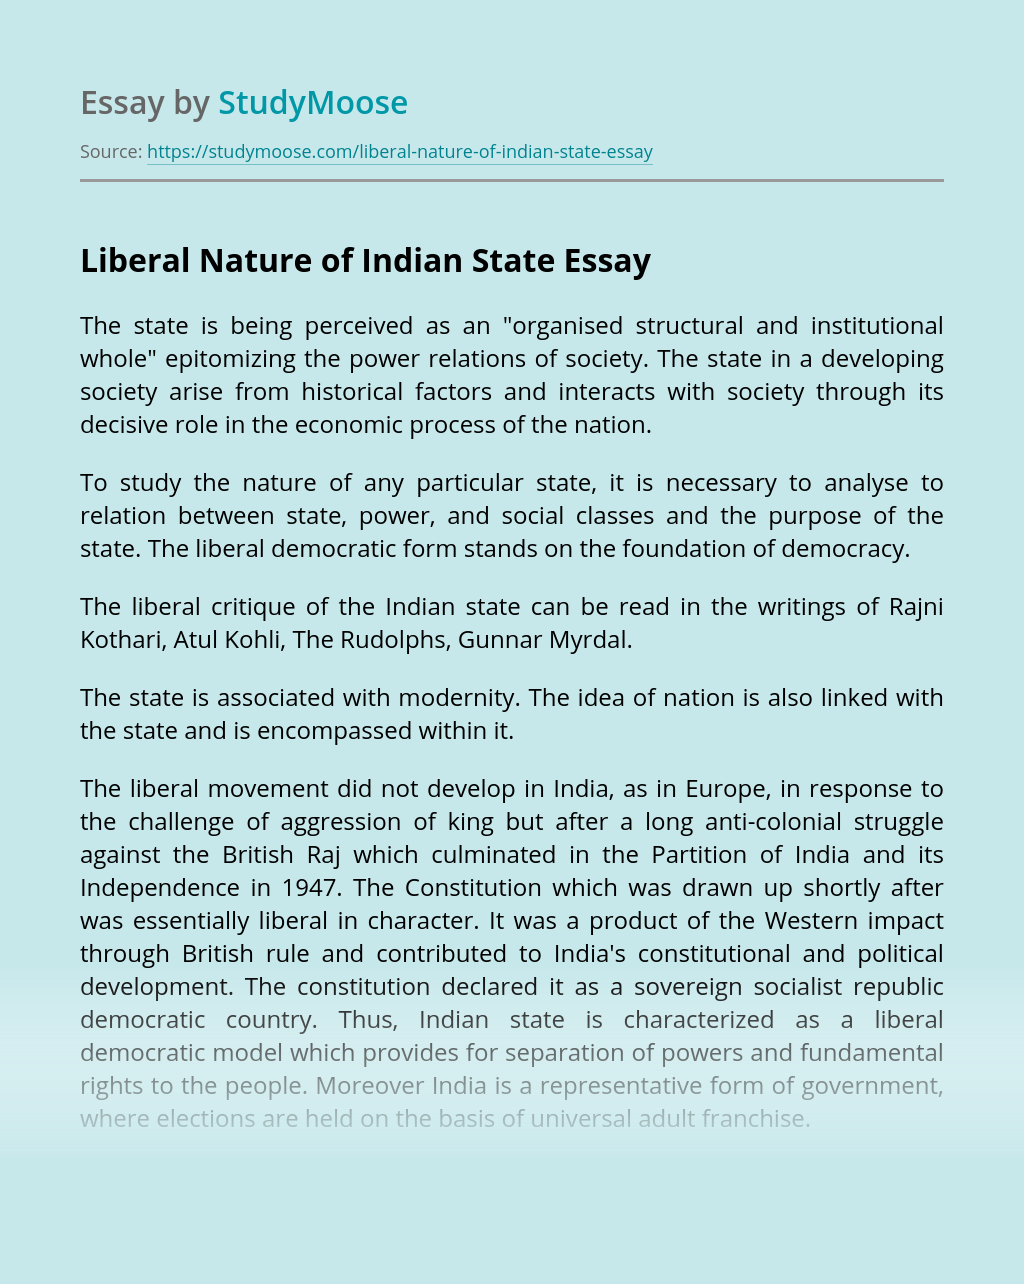 Liberal Nature of Indian State